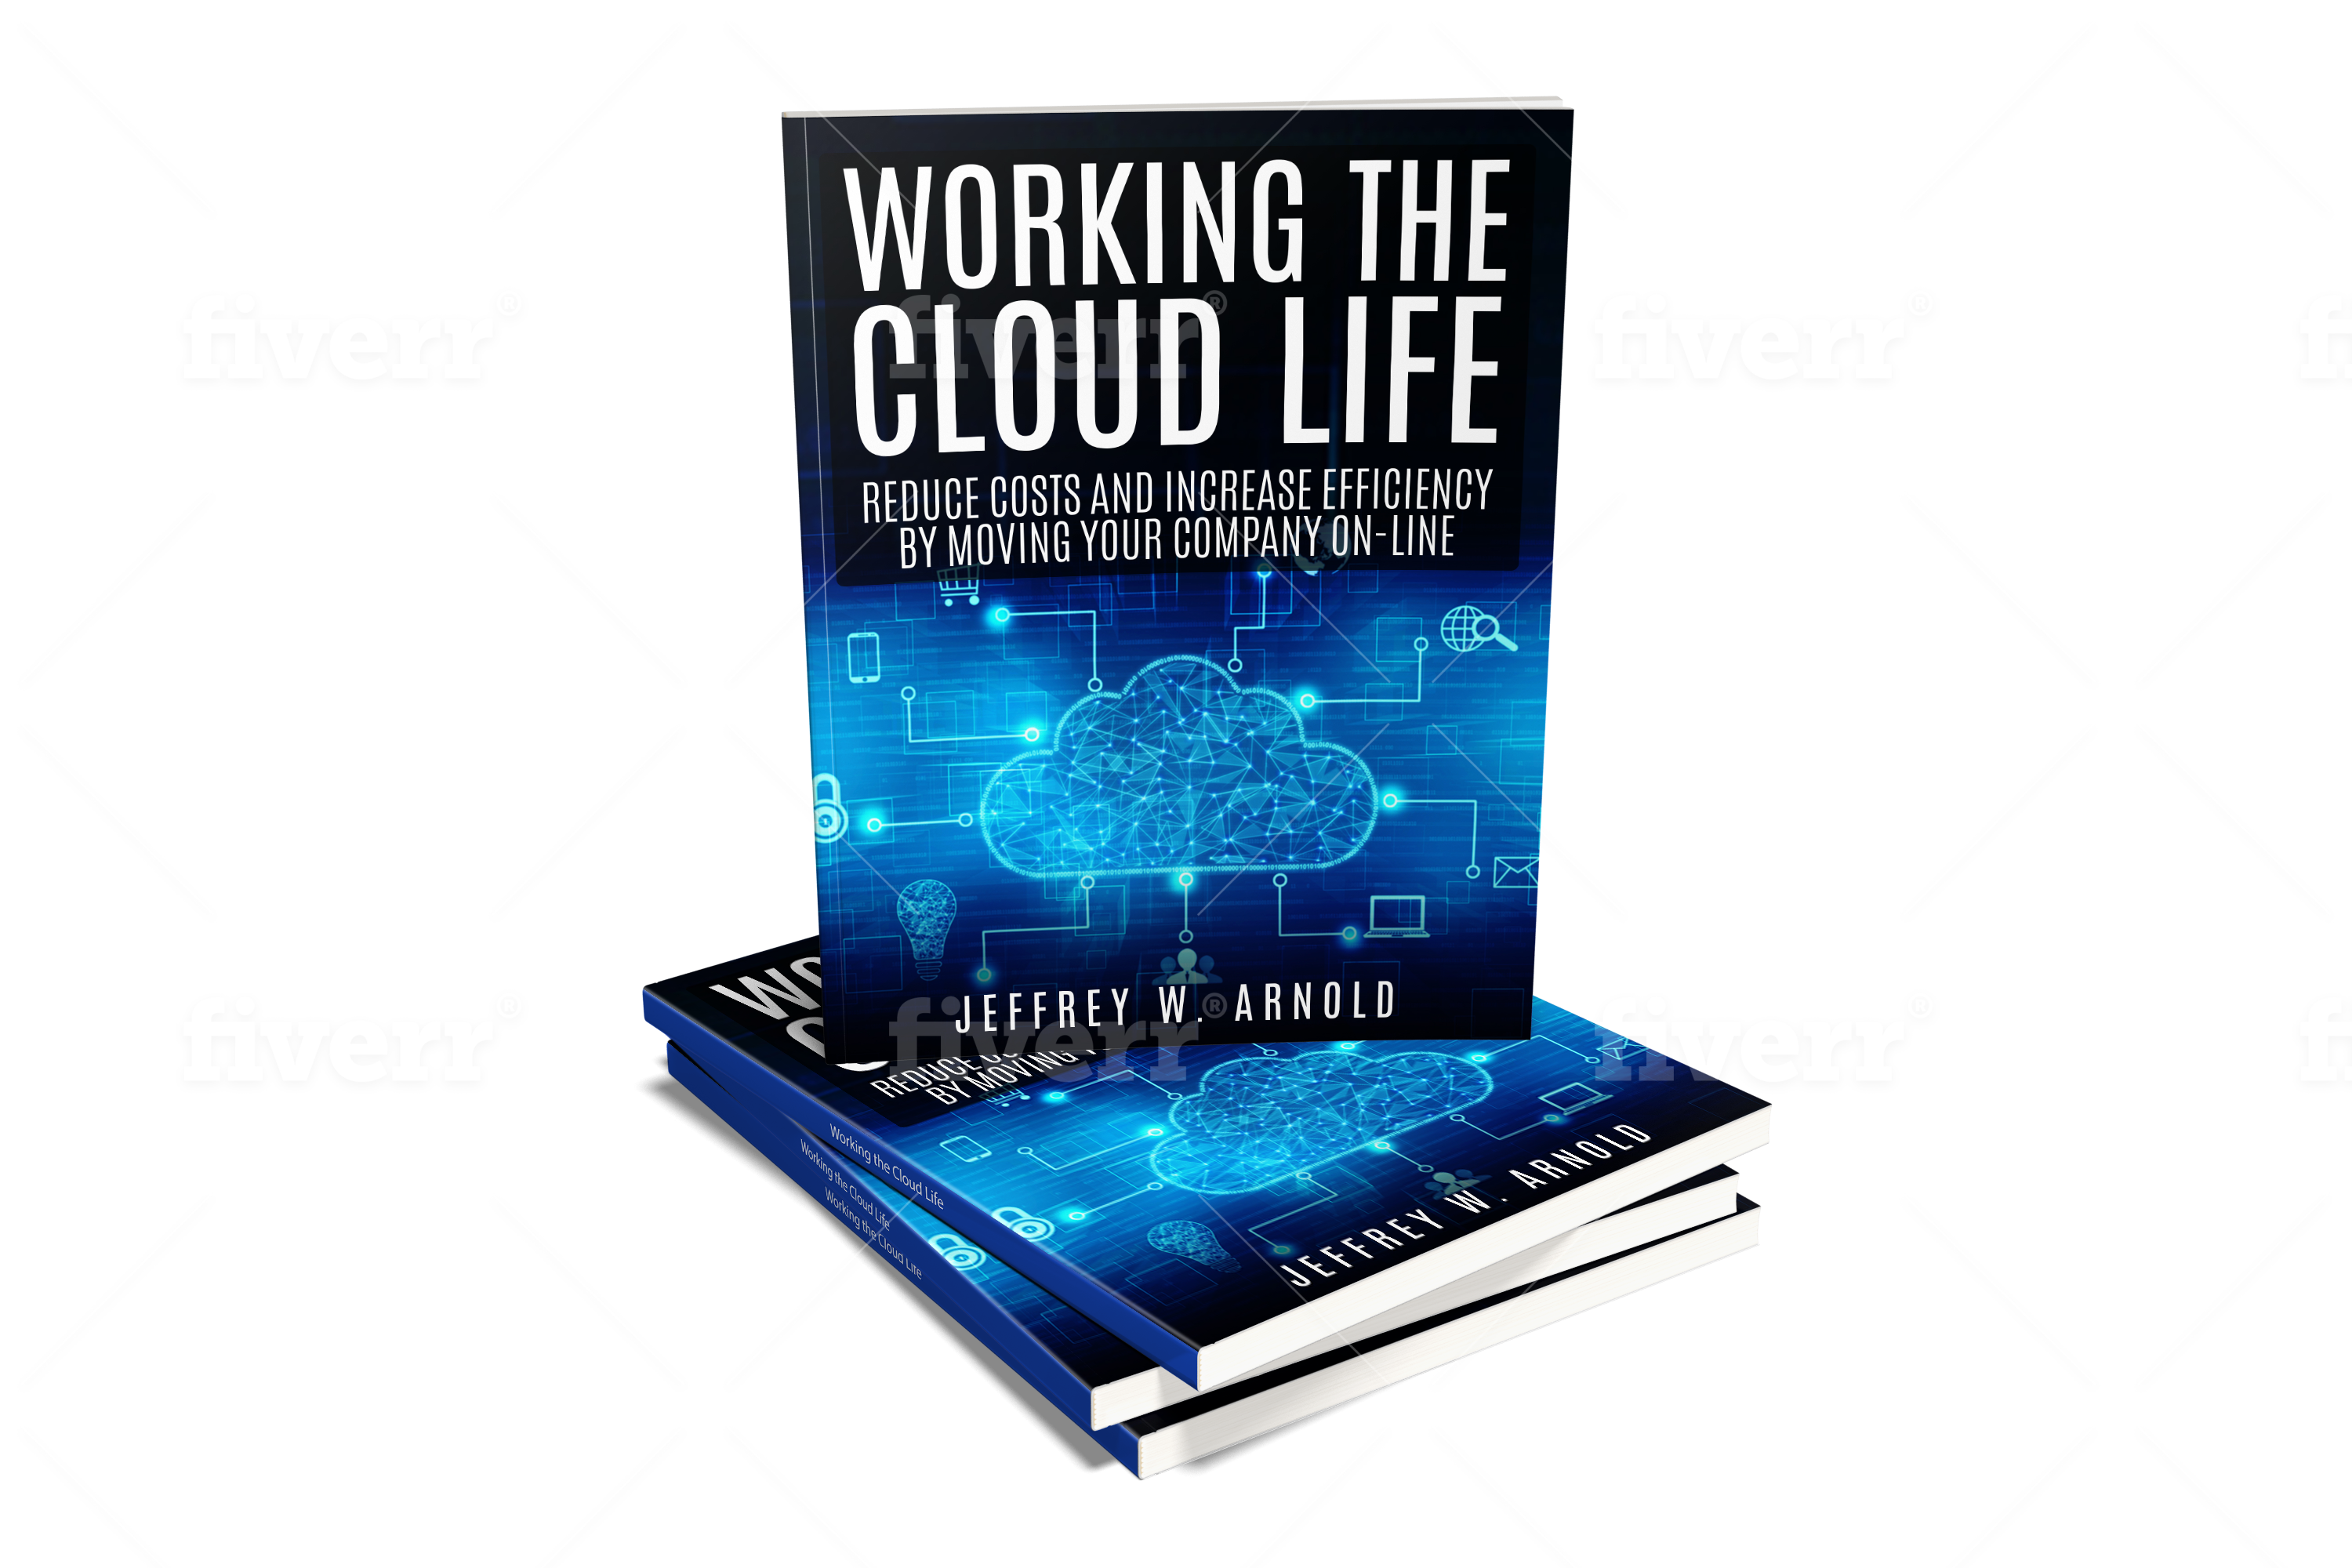 Jeffrey W. Arnold, Set to Launch a Book to Help Businesses Migrate to Cloud Computing